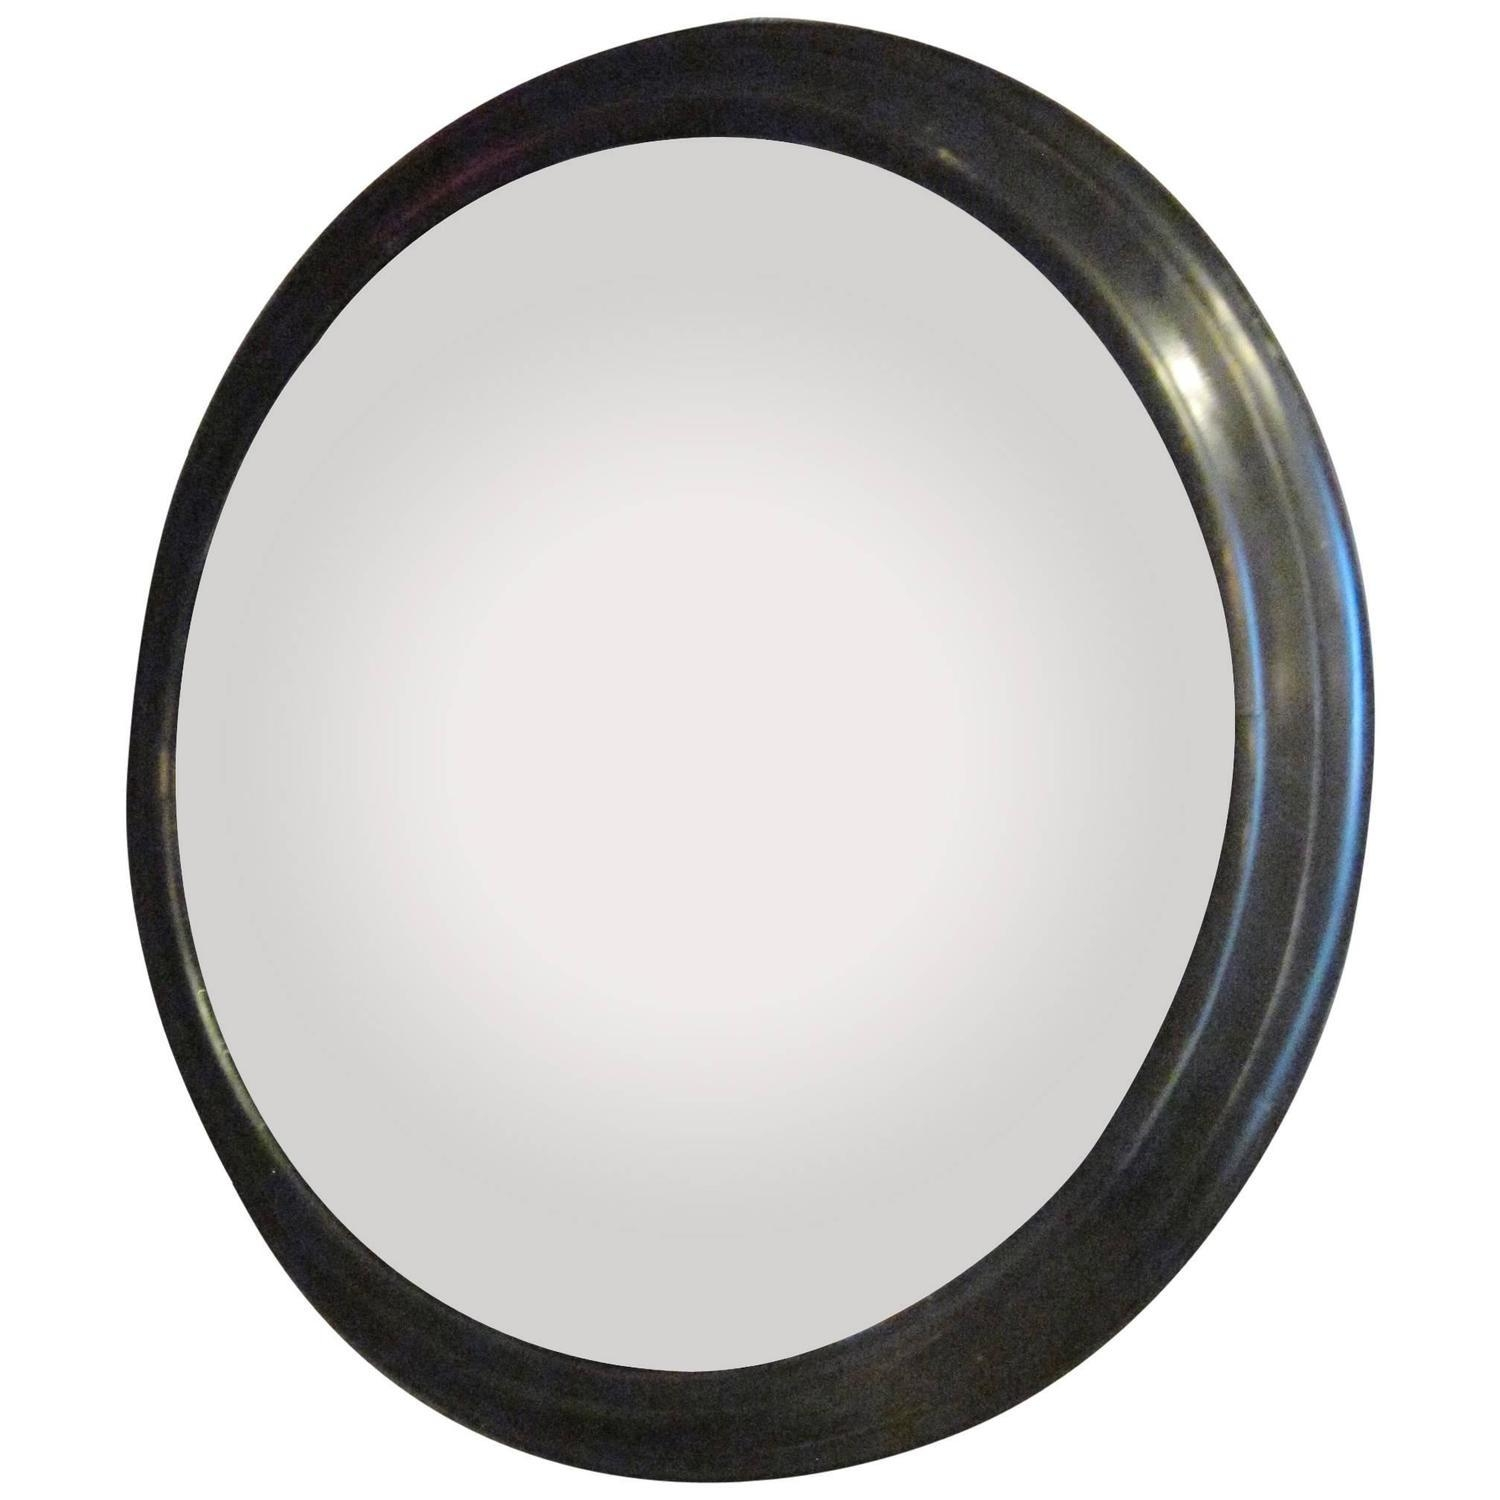 French Napoleon Iii Extra Large Round Convex Mirror In Black Frame Throughout Large Round Convex Mirror (Image 7 of 20)